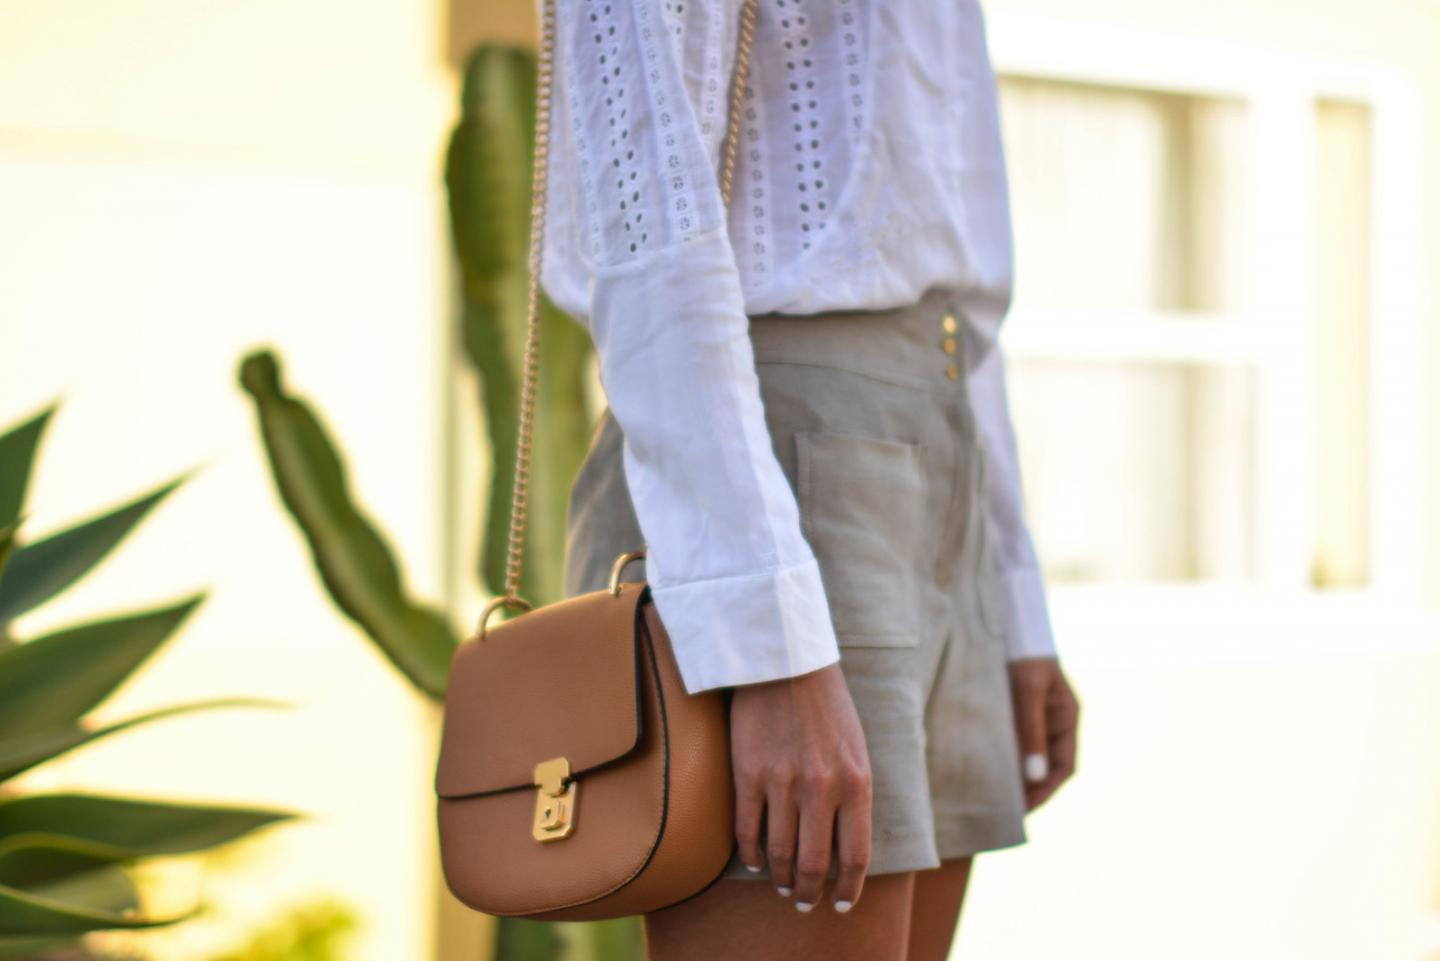 EJSTYLE - Emma Hill wears white broderie anglais shirt, M&S faux suede front pocket shorts, Forever 21 Tan shoulder bag similar to chloe 'Drew', SS15